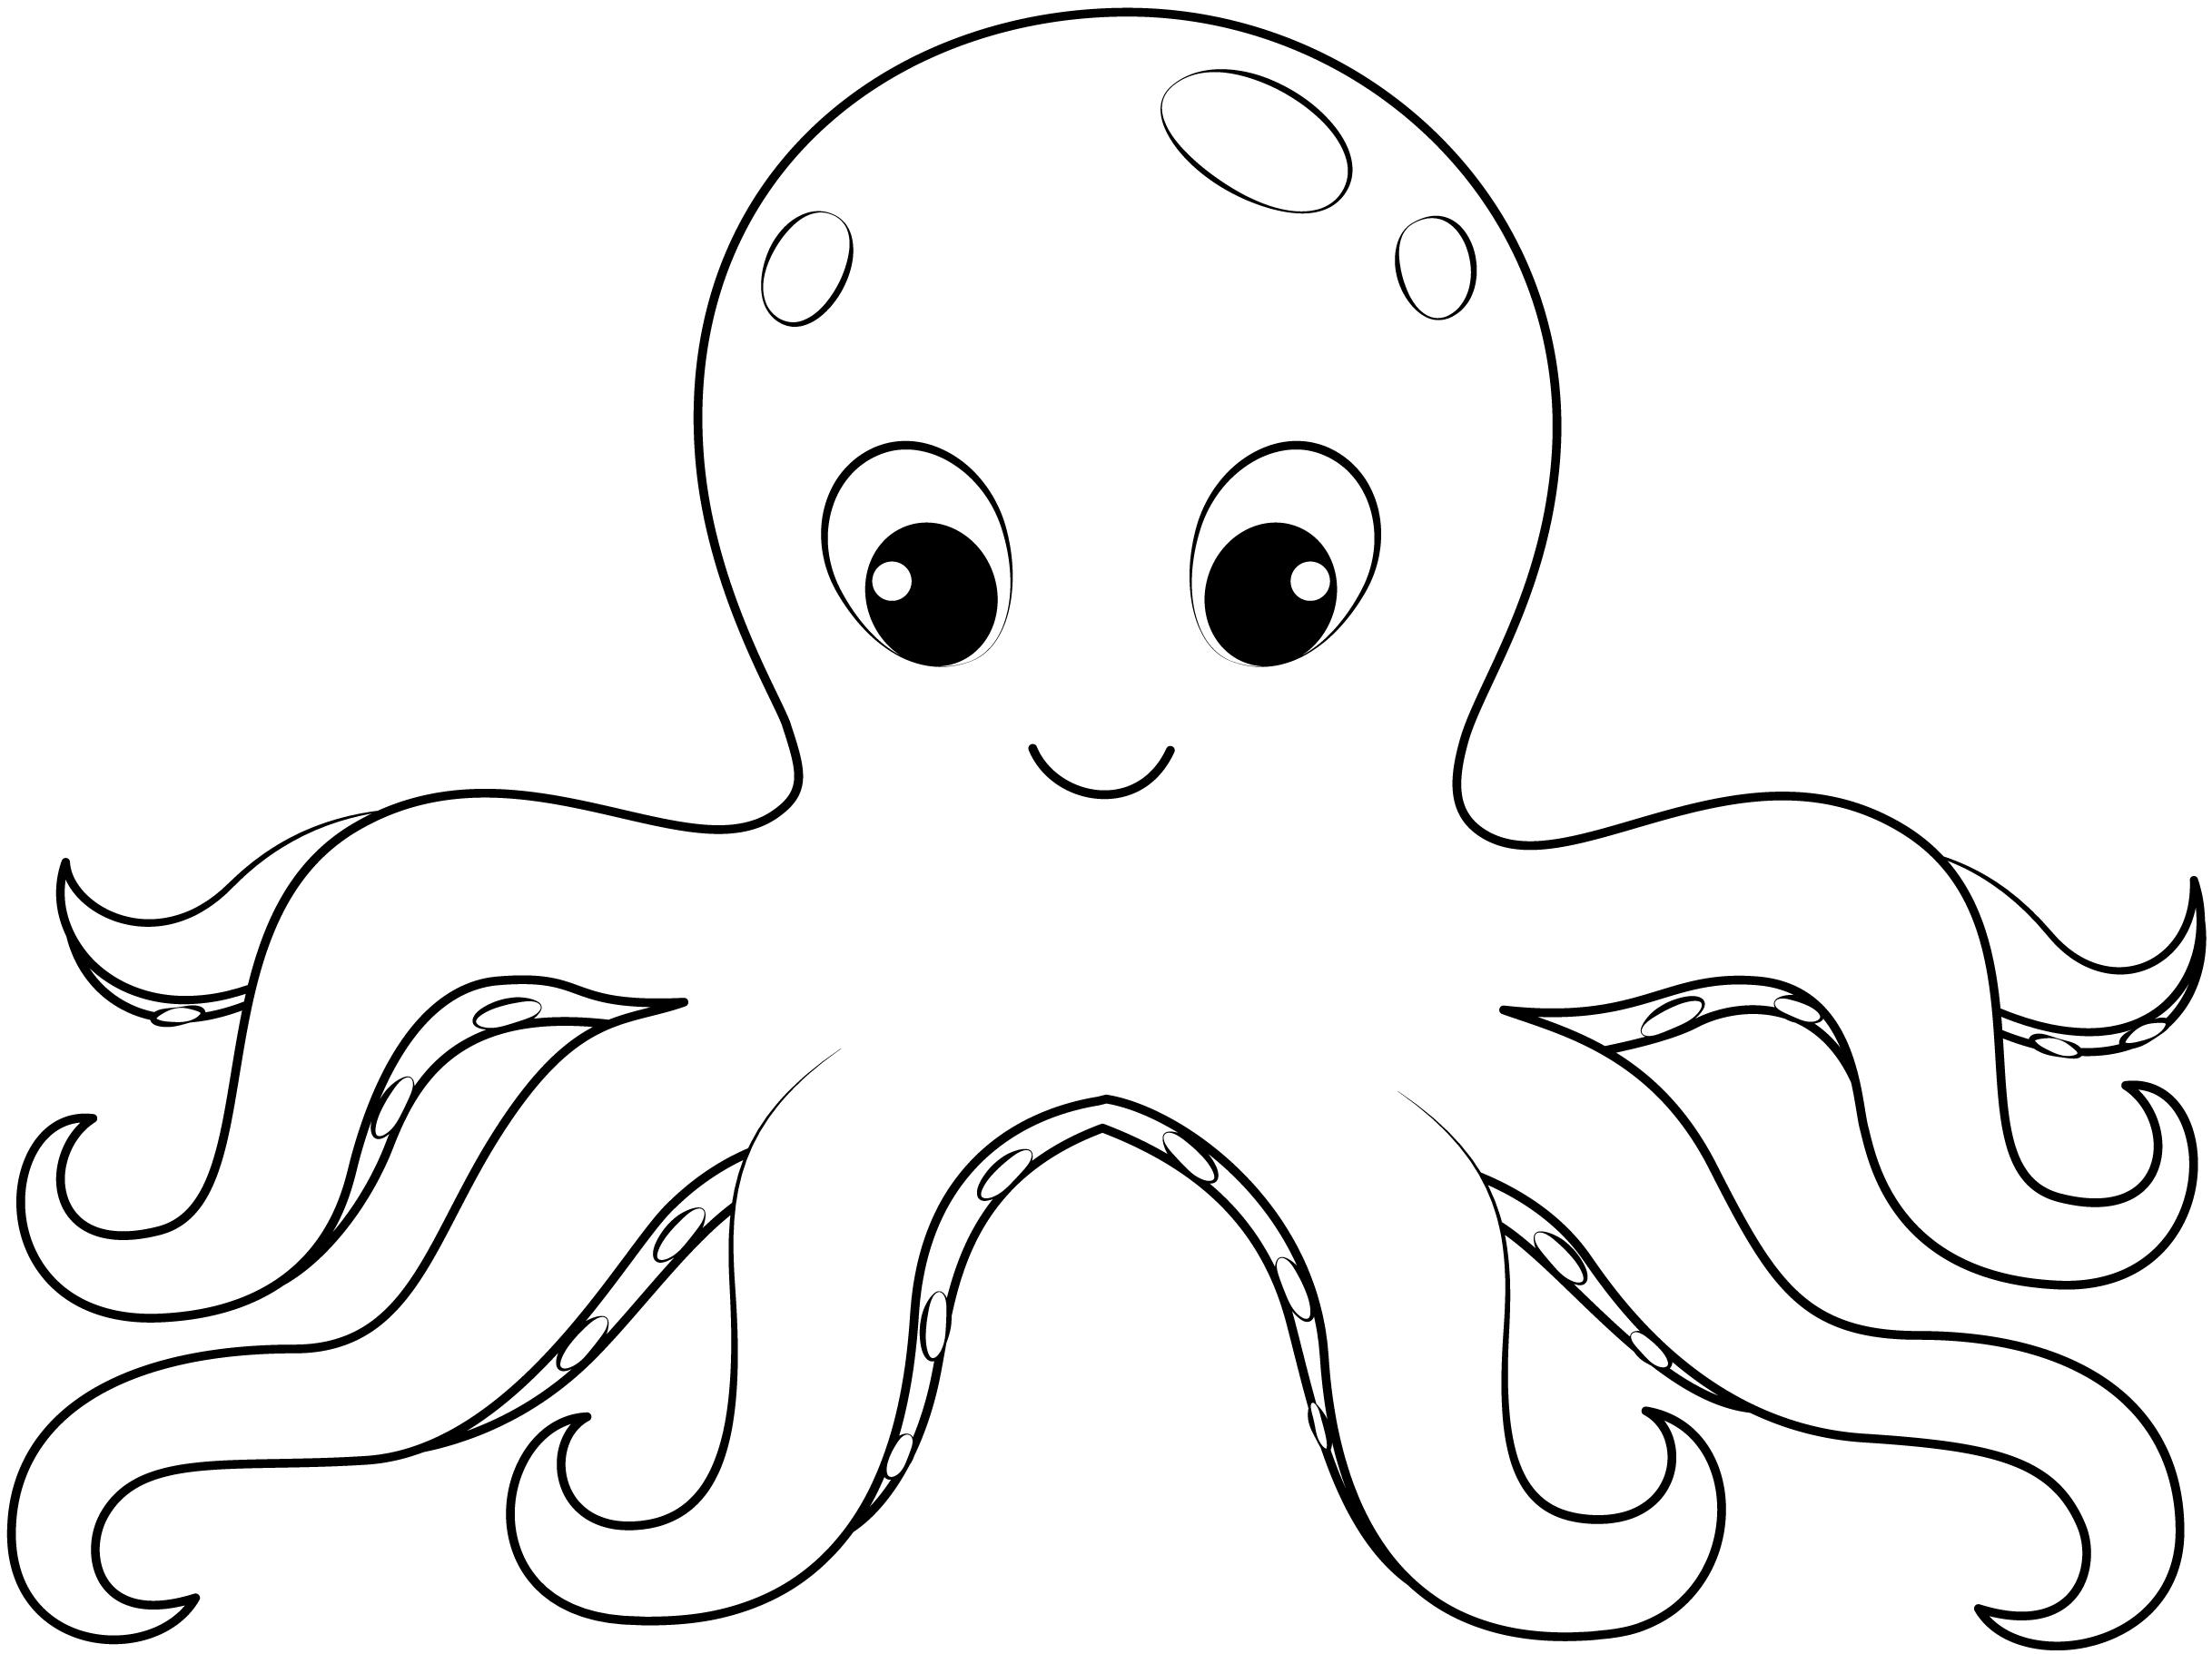 octopus pictures for coloring free printable octopus coloring pages for kids coloring octopus pictures for